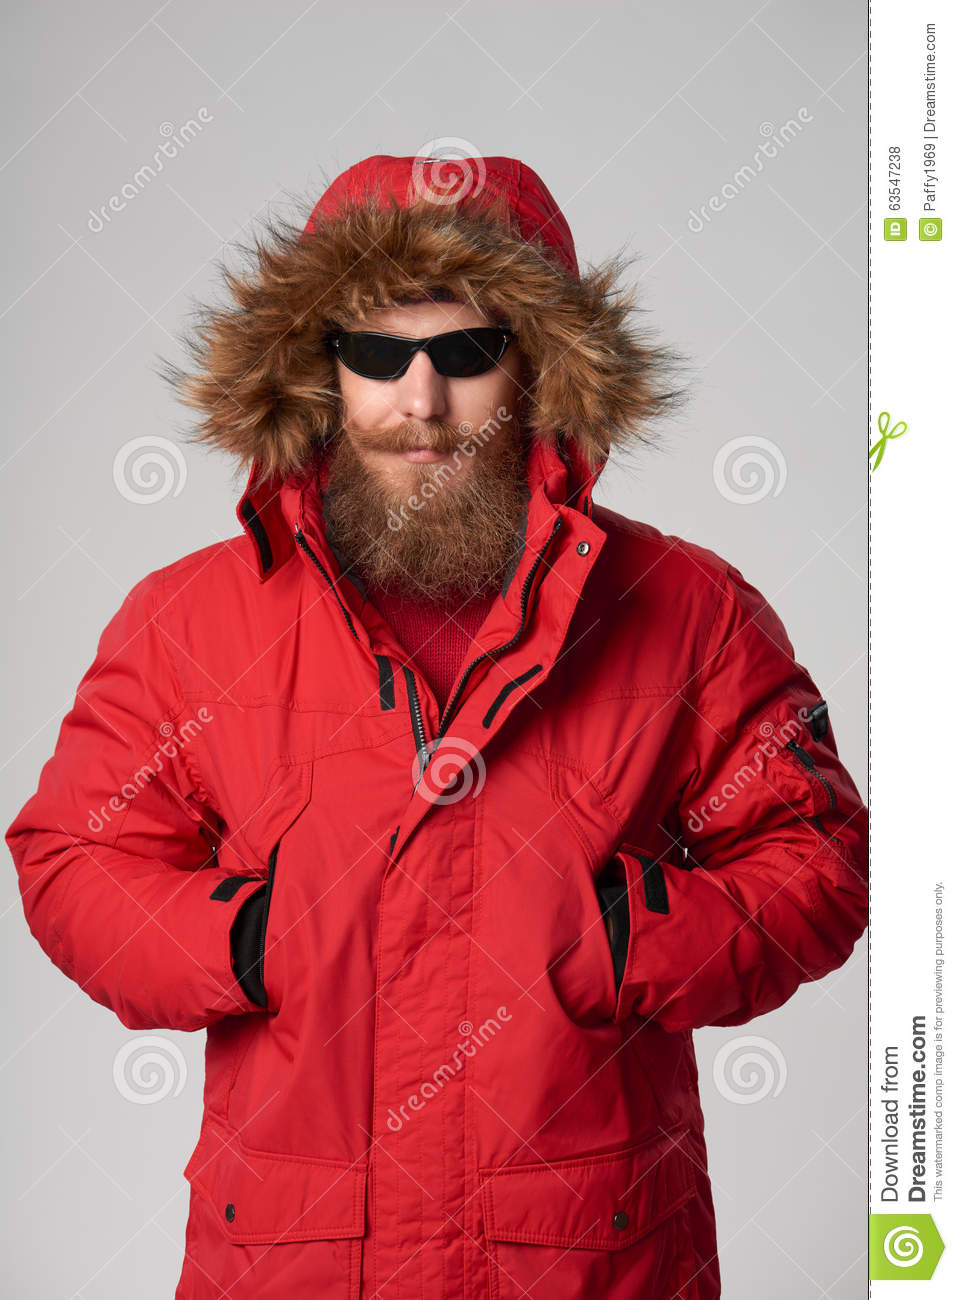 Man Wearing Red Winter Alaska Jacket With Fur Hood On Stock Photo Image 63547238